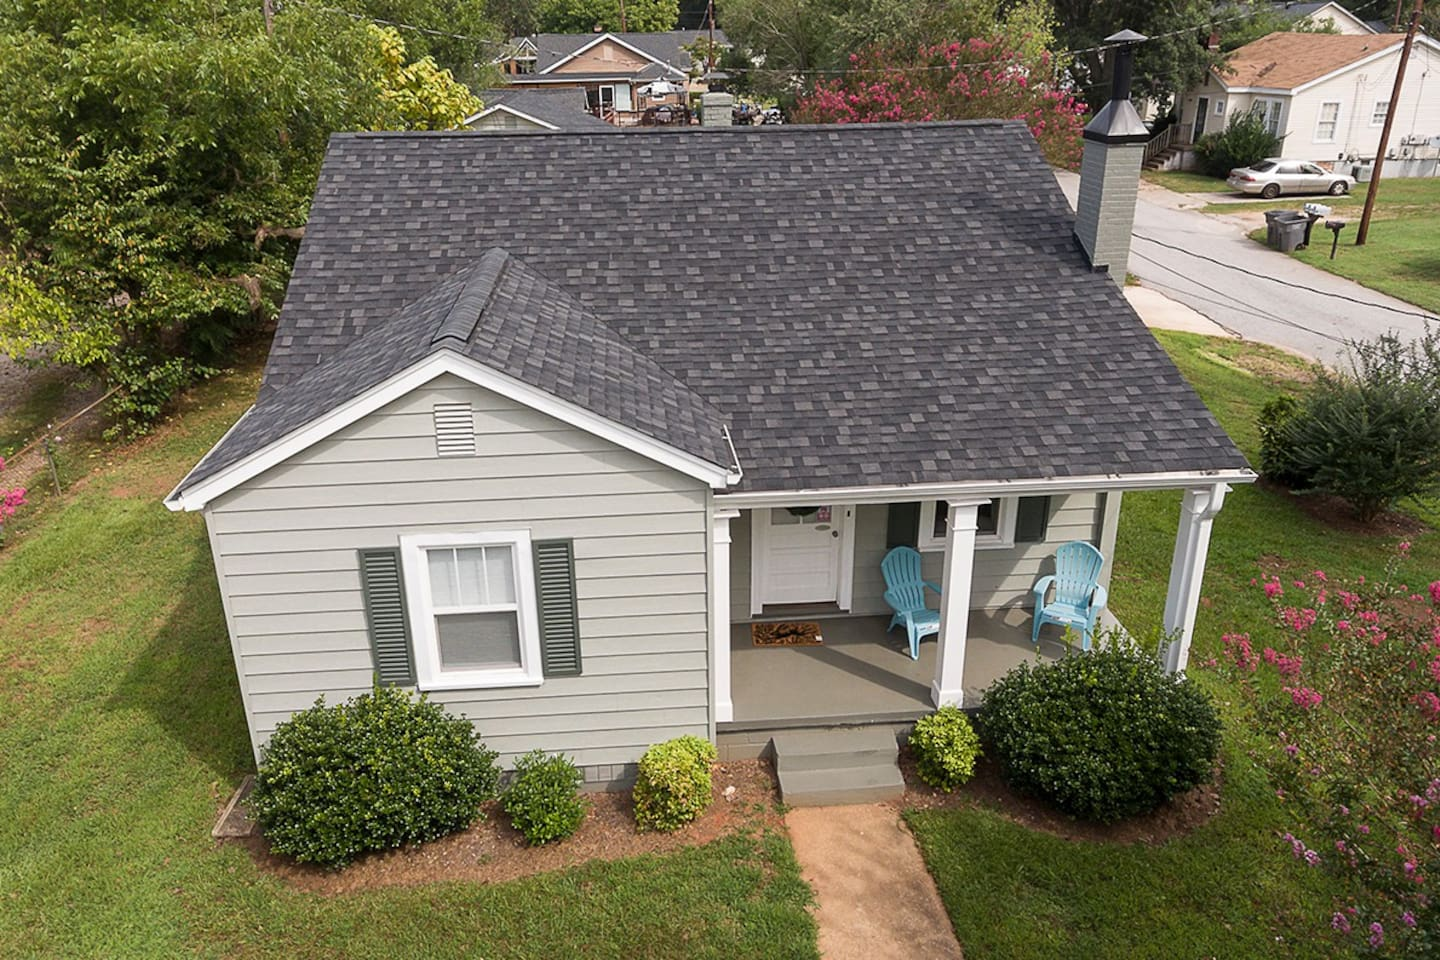 Our cozy, light and airy cottage will help you feel at home in Greenville.